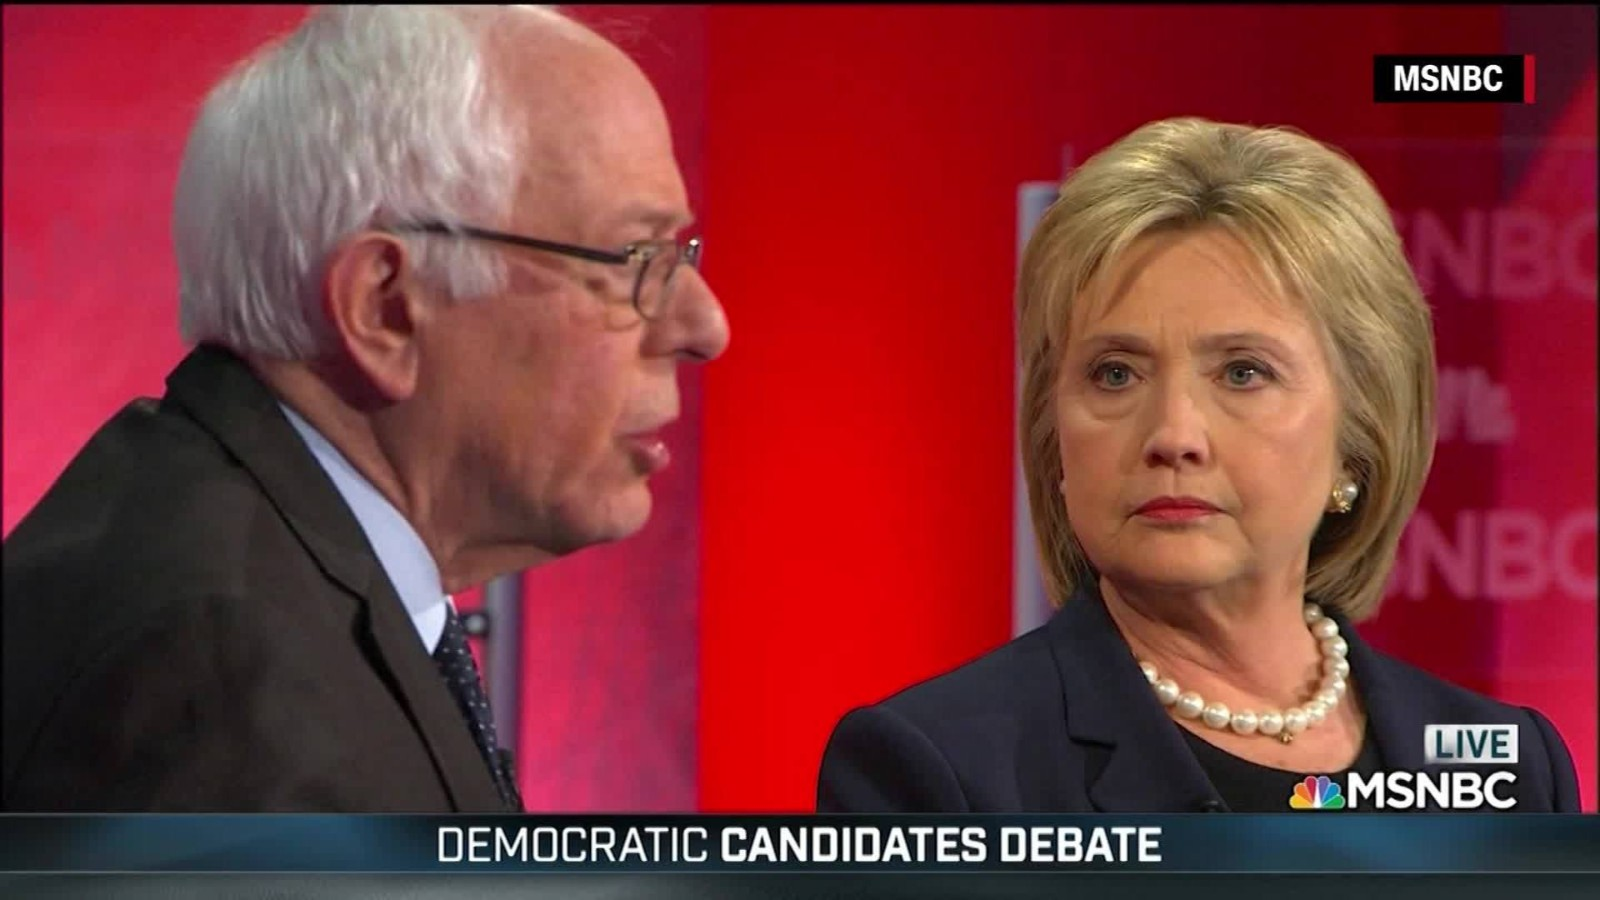 Clinton Sanders Debate